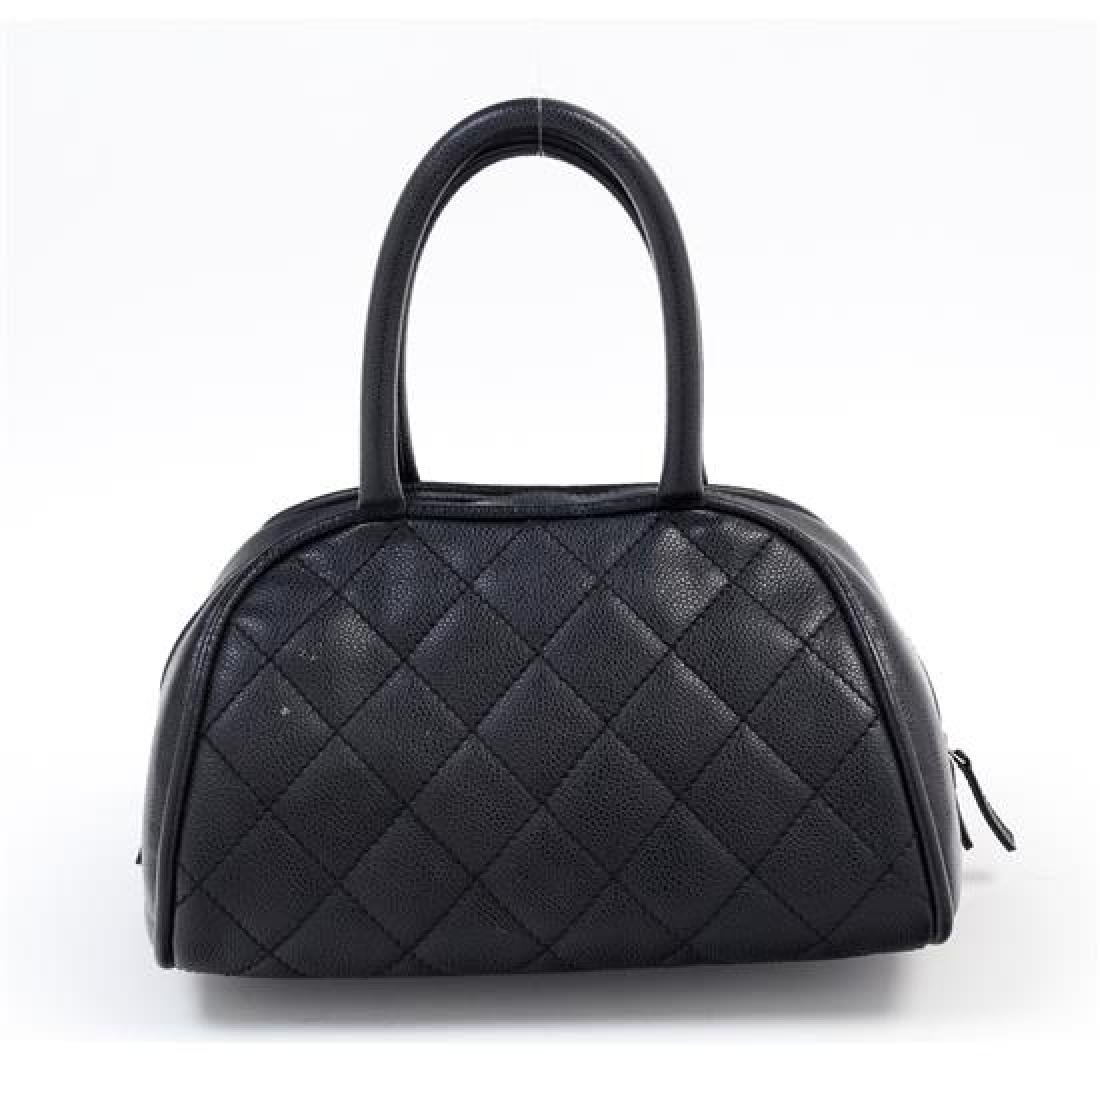 "A Chanel Black Caviar Quilted Bowler Bag, 10.5"" x 6.5"" - 3"